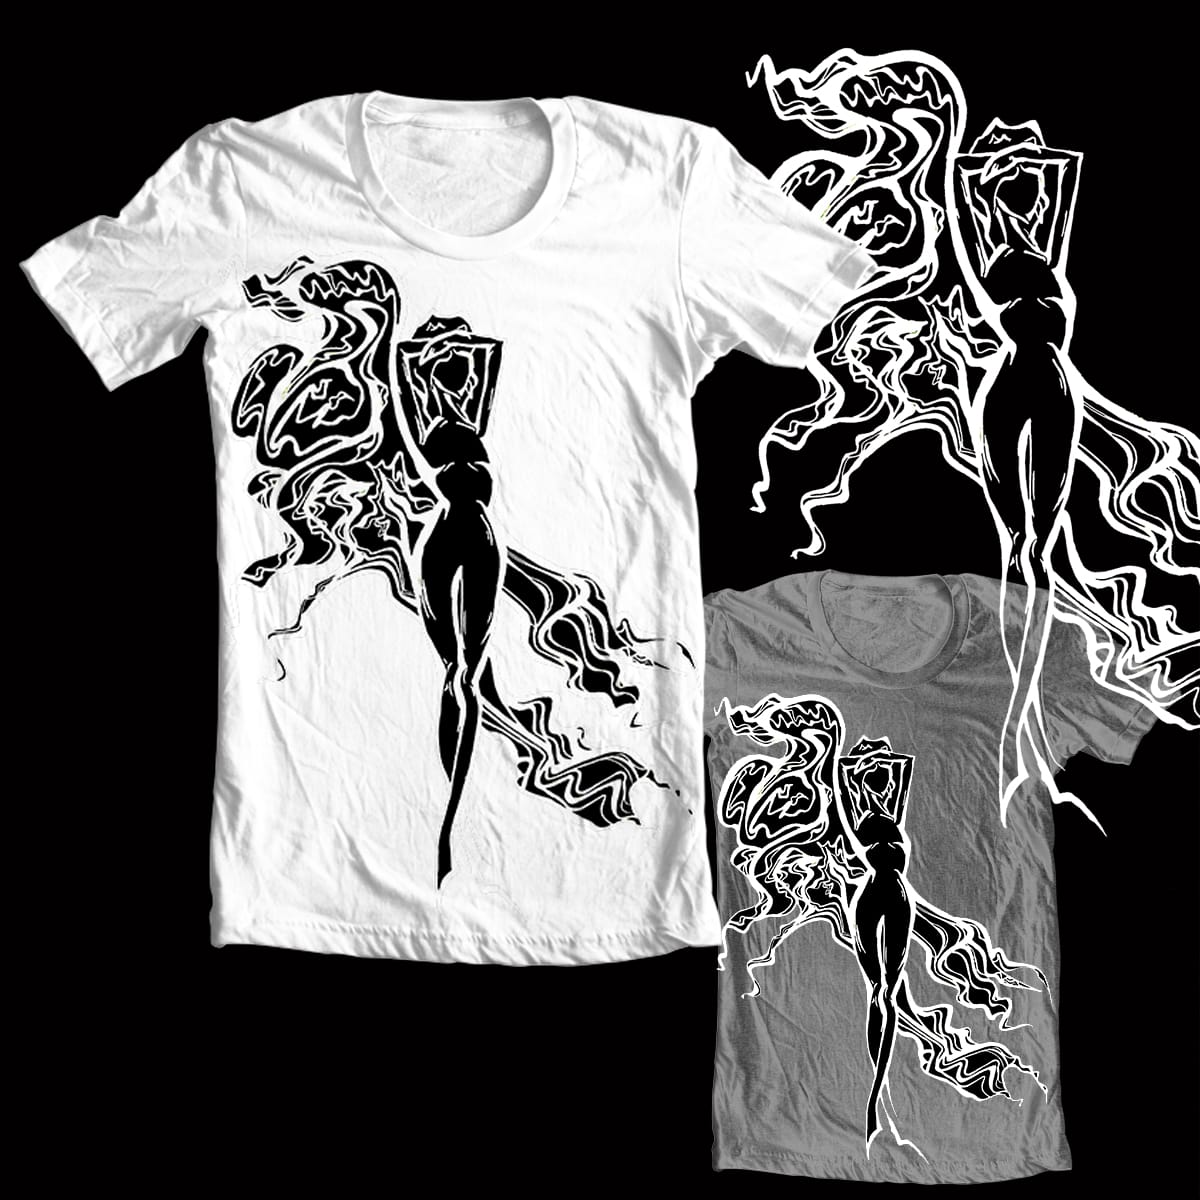 Body Contours by YISectually on Threadless